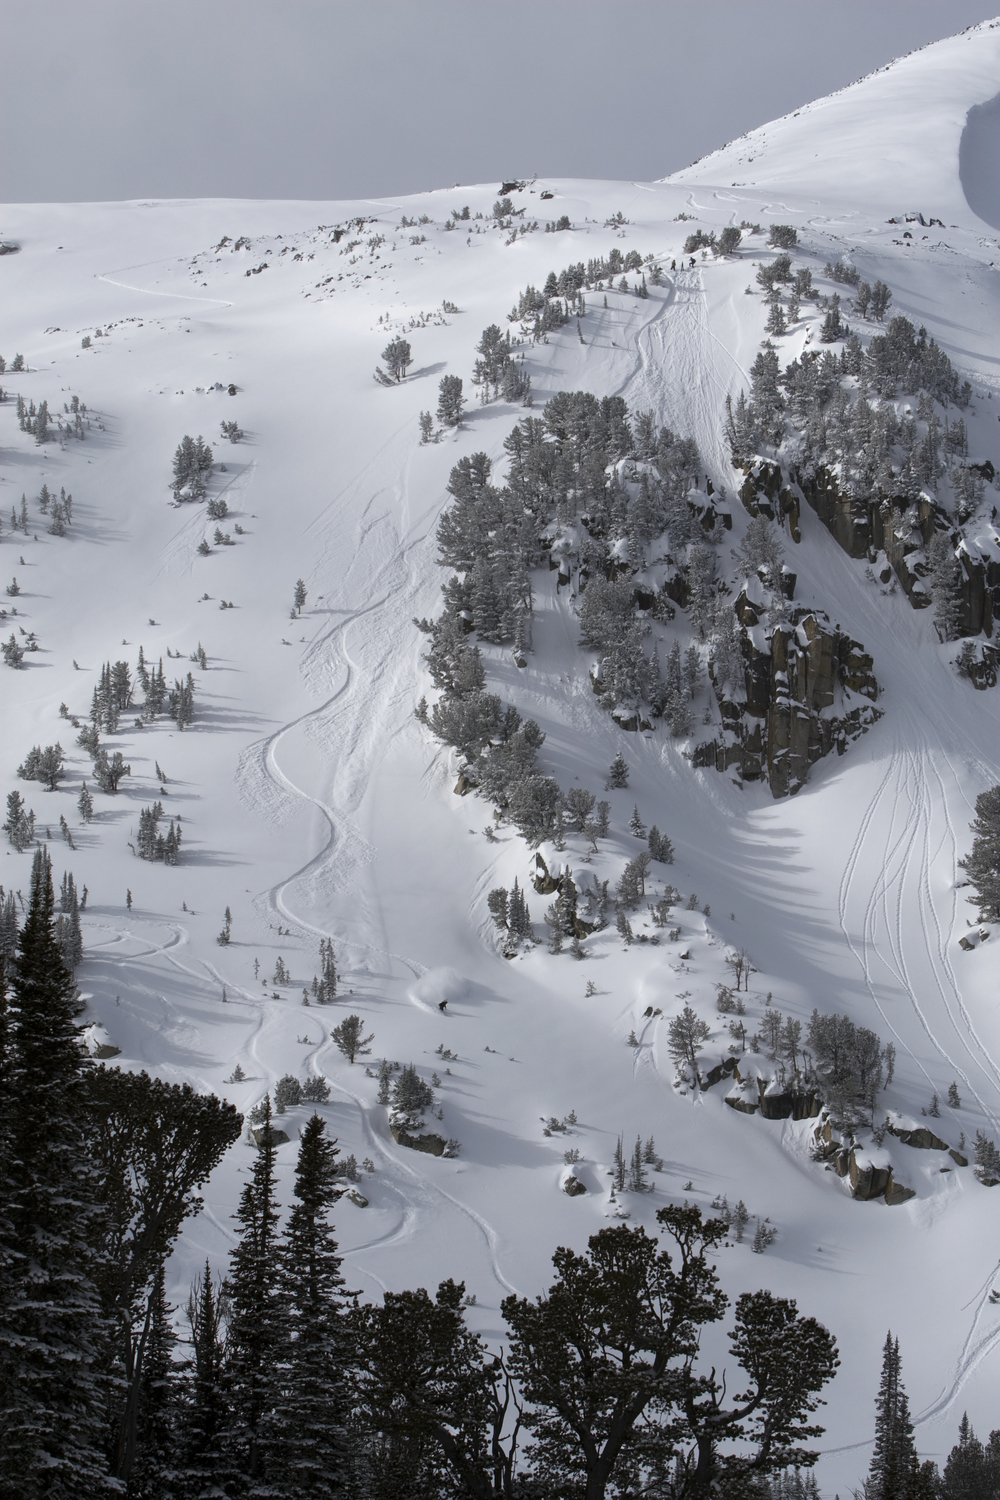 Chutes and beautiful natural terrain features covered in powder!